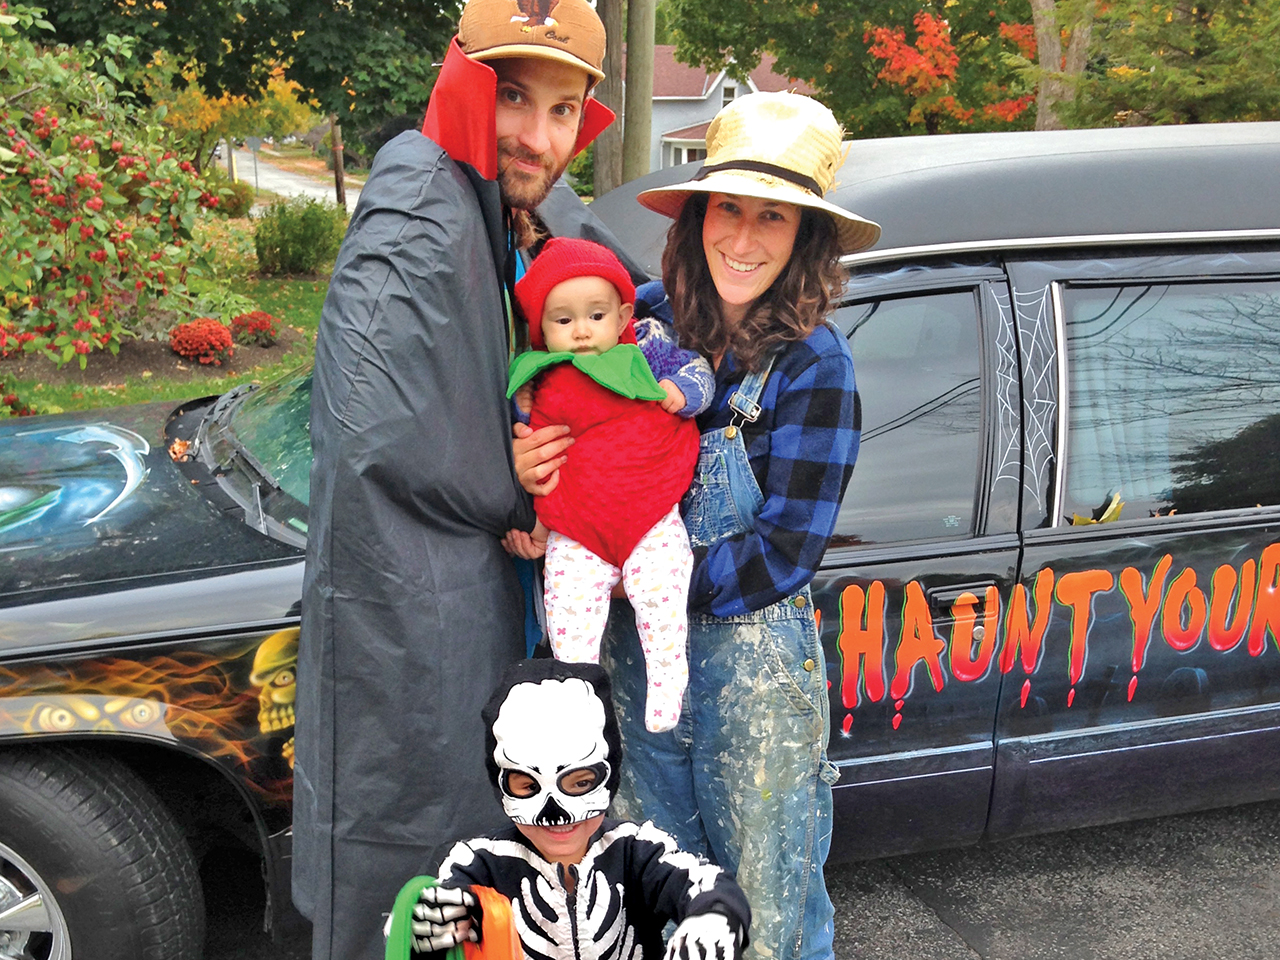 Family dressed up to go trick-or-treating for halloween